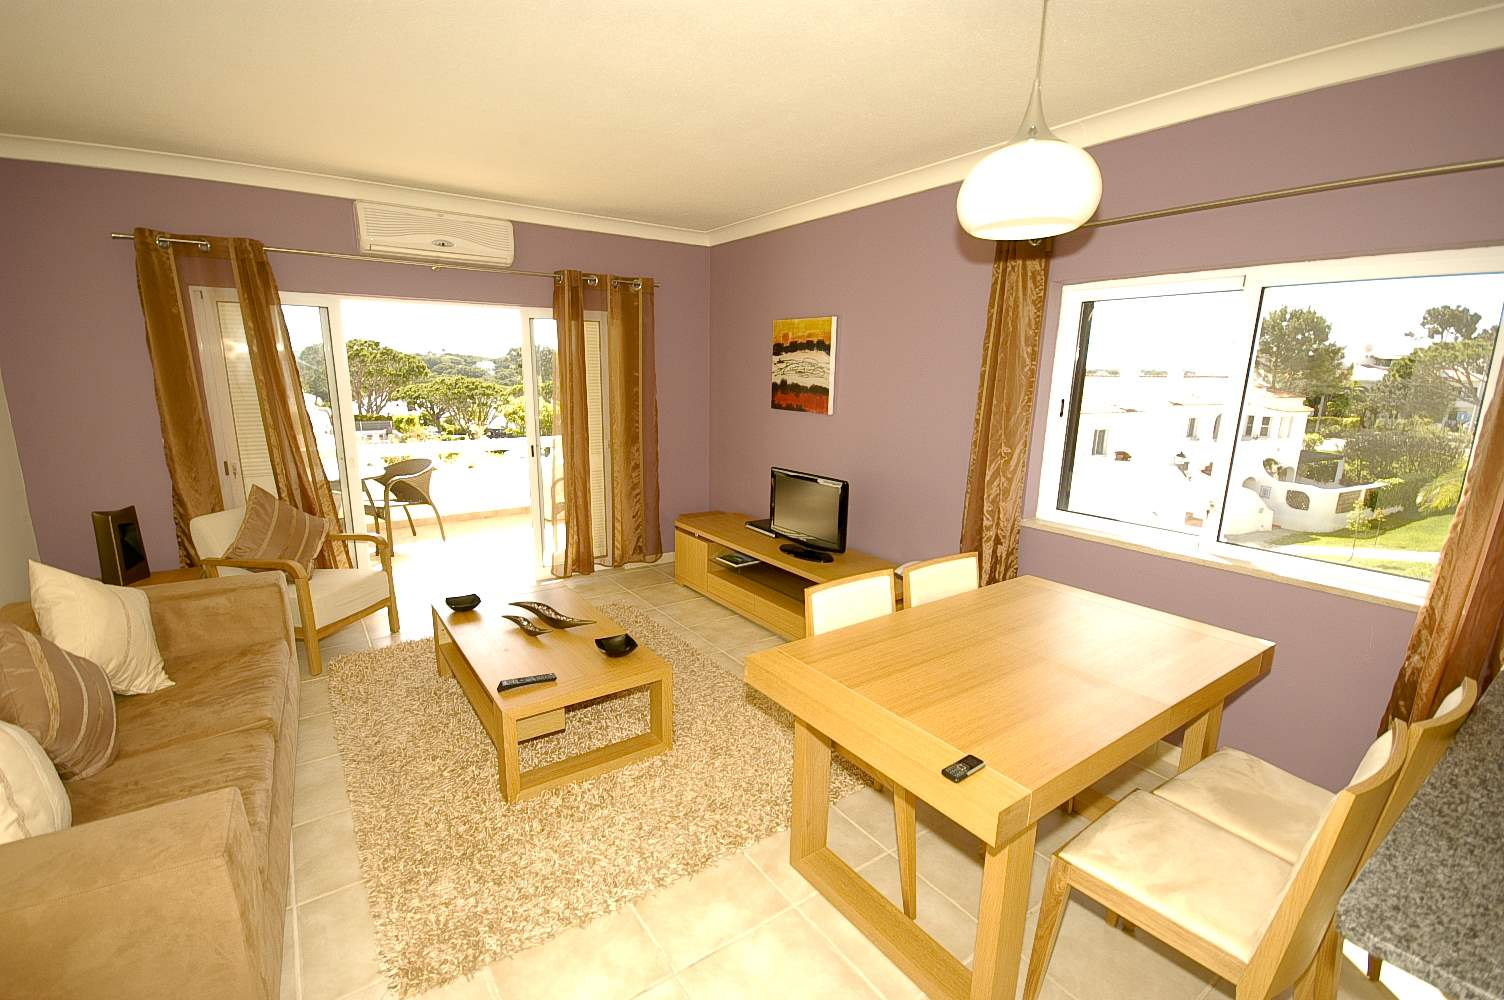 Apartment Azalea 2, 2 bedroom apartment in Vale do Lobo, Algarve Photo #4